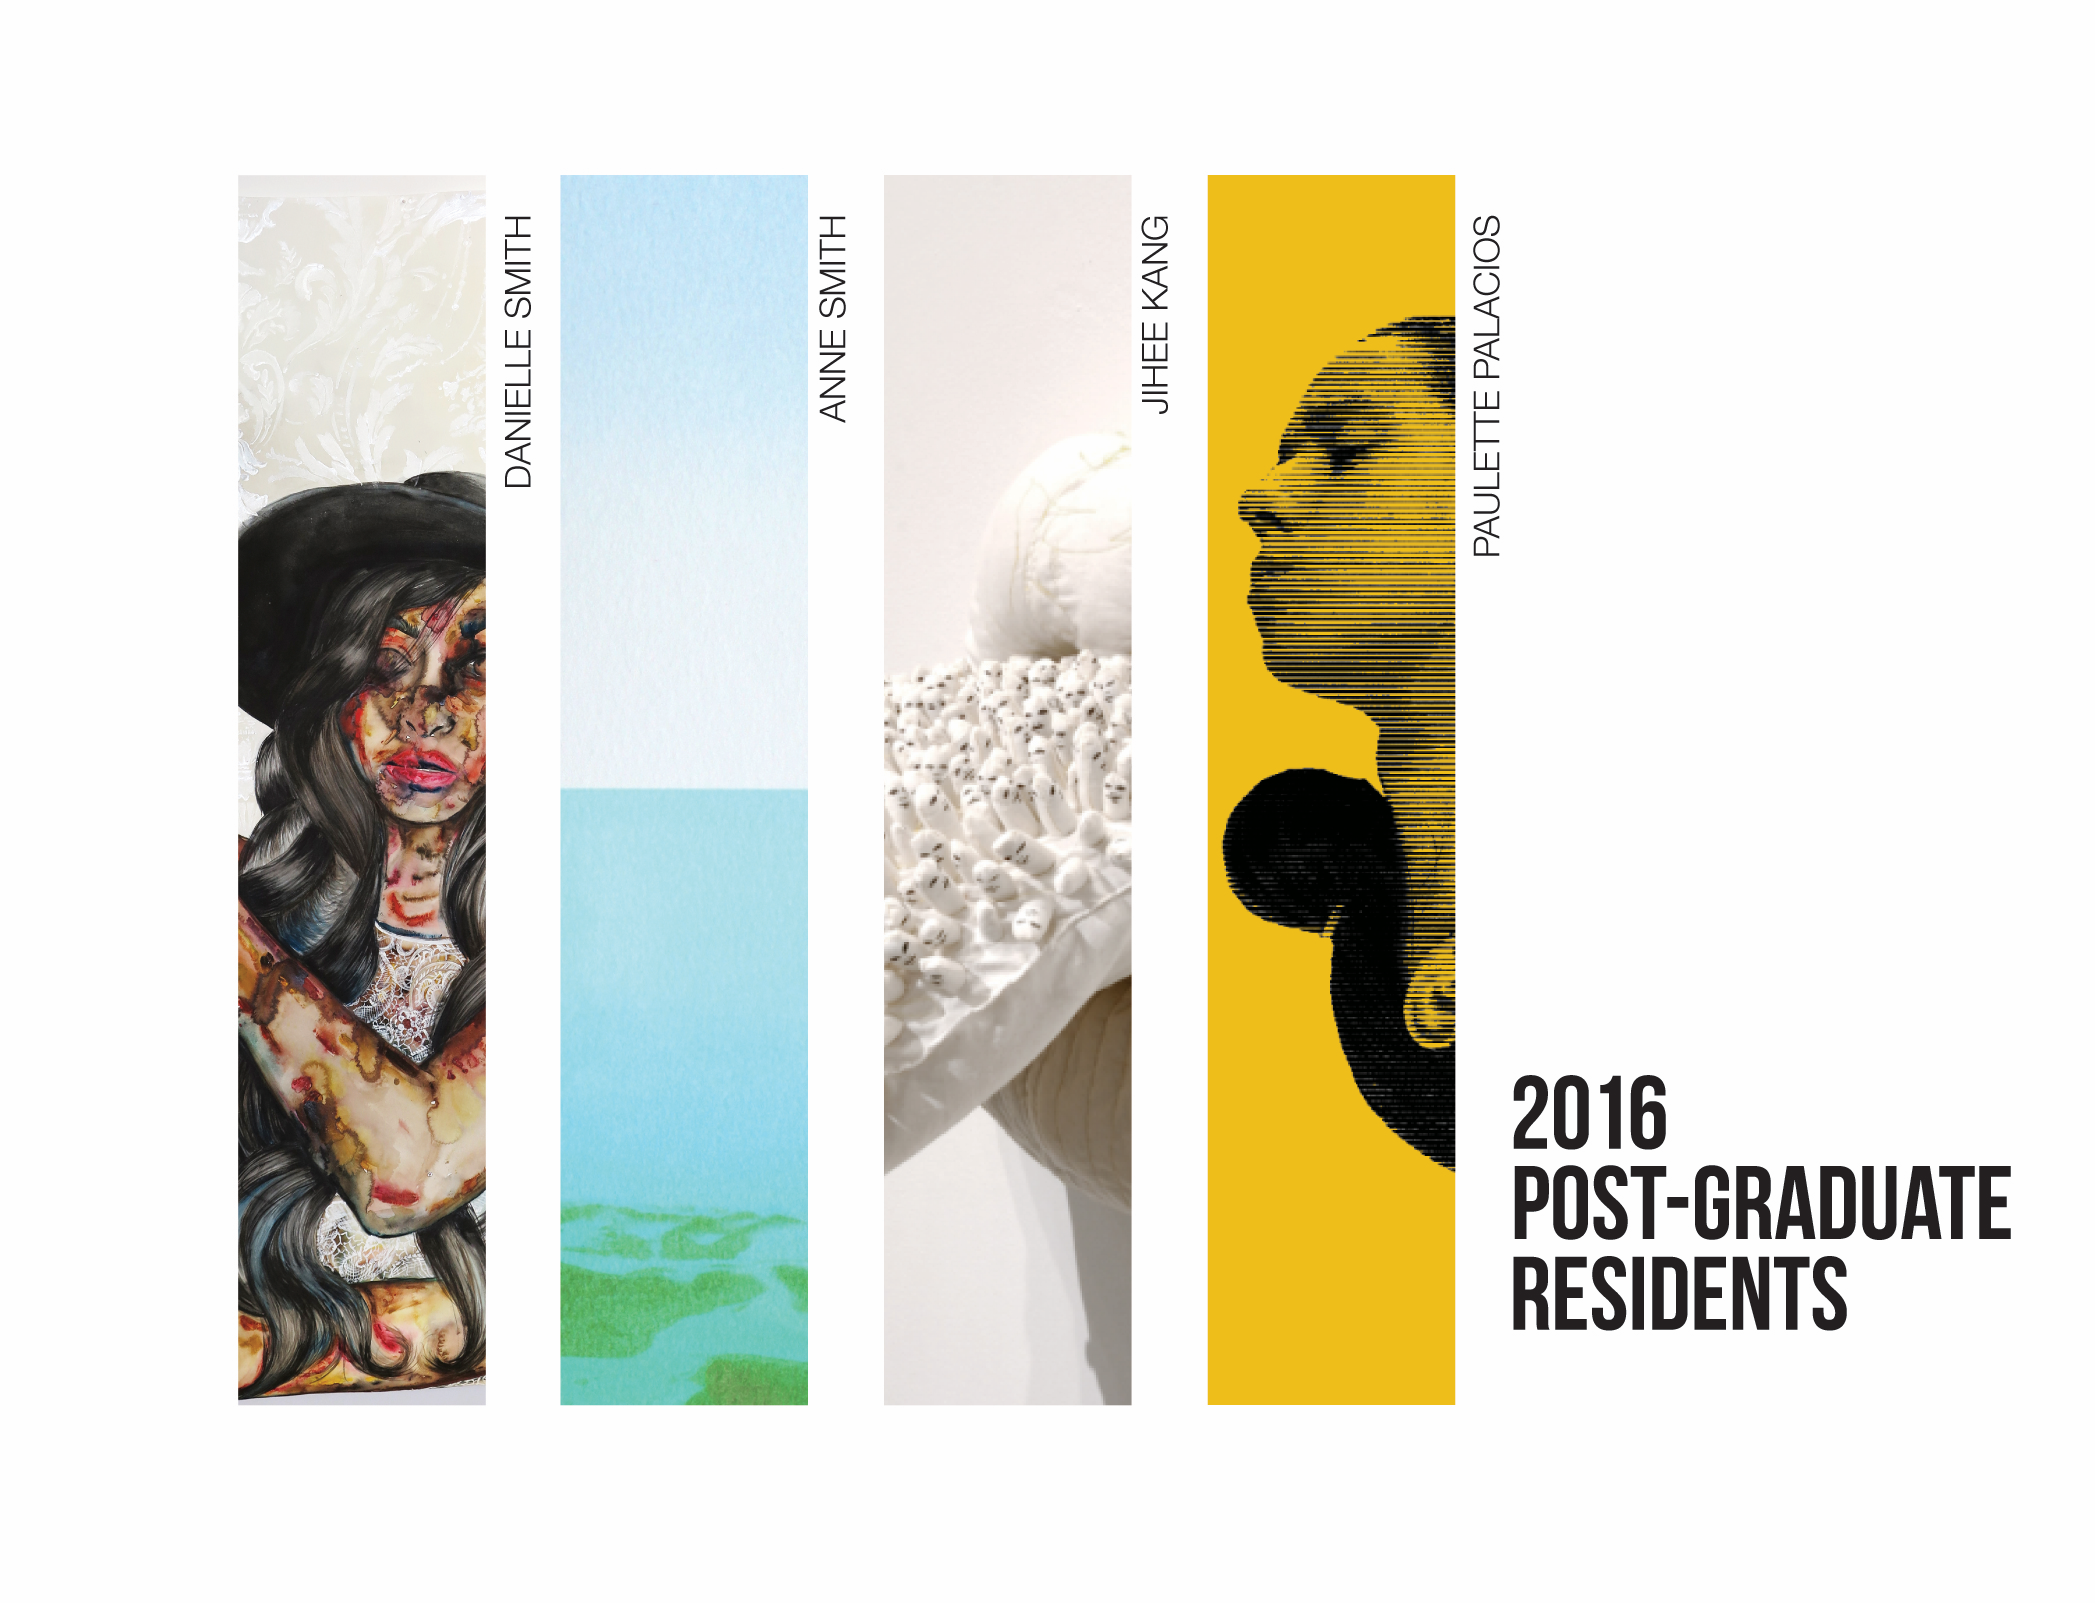 2016 Post-Grad Postcard DRAFT